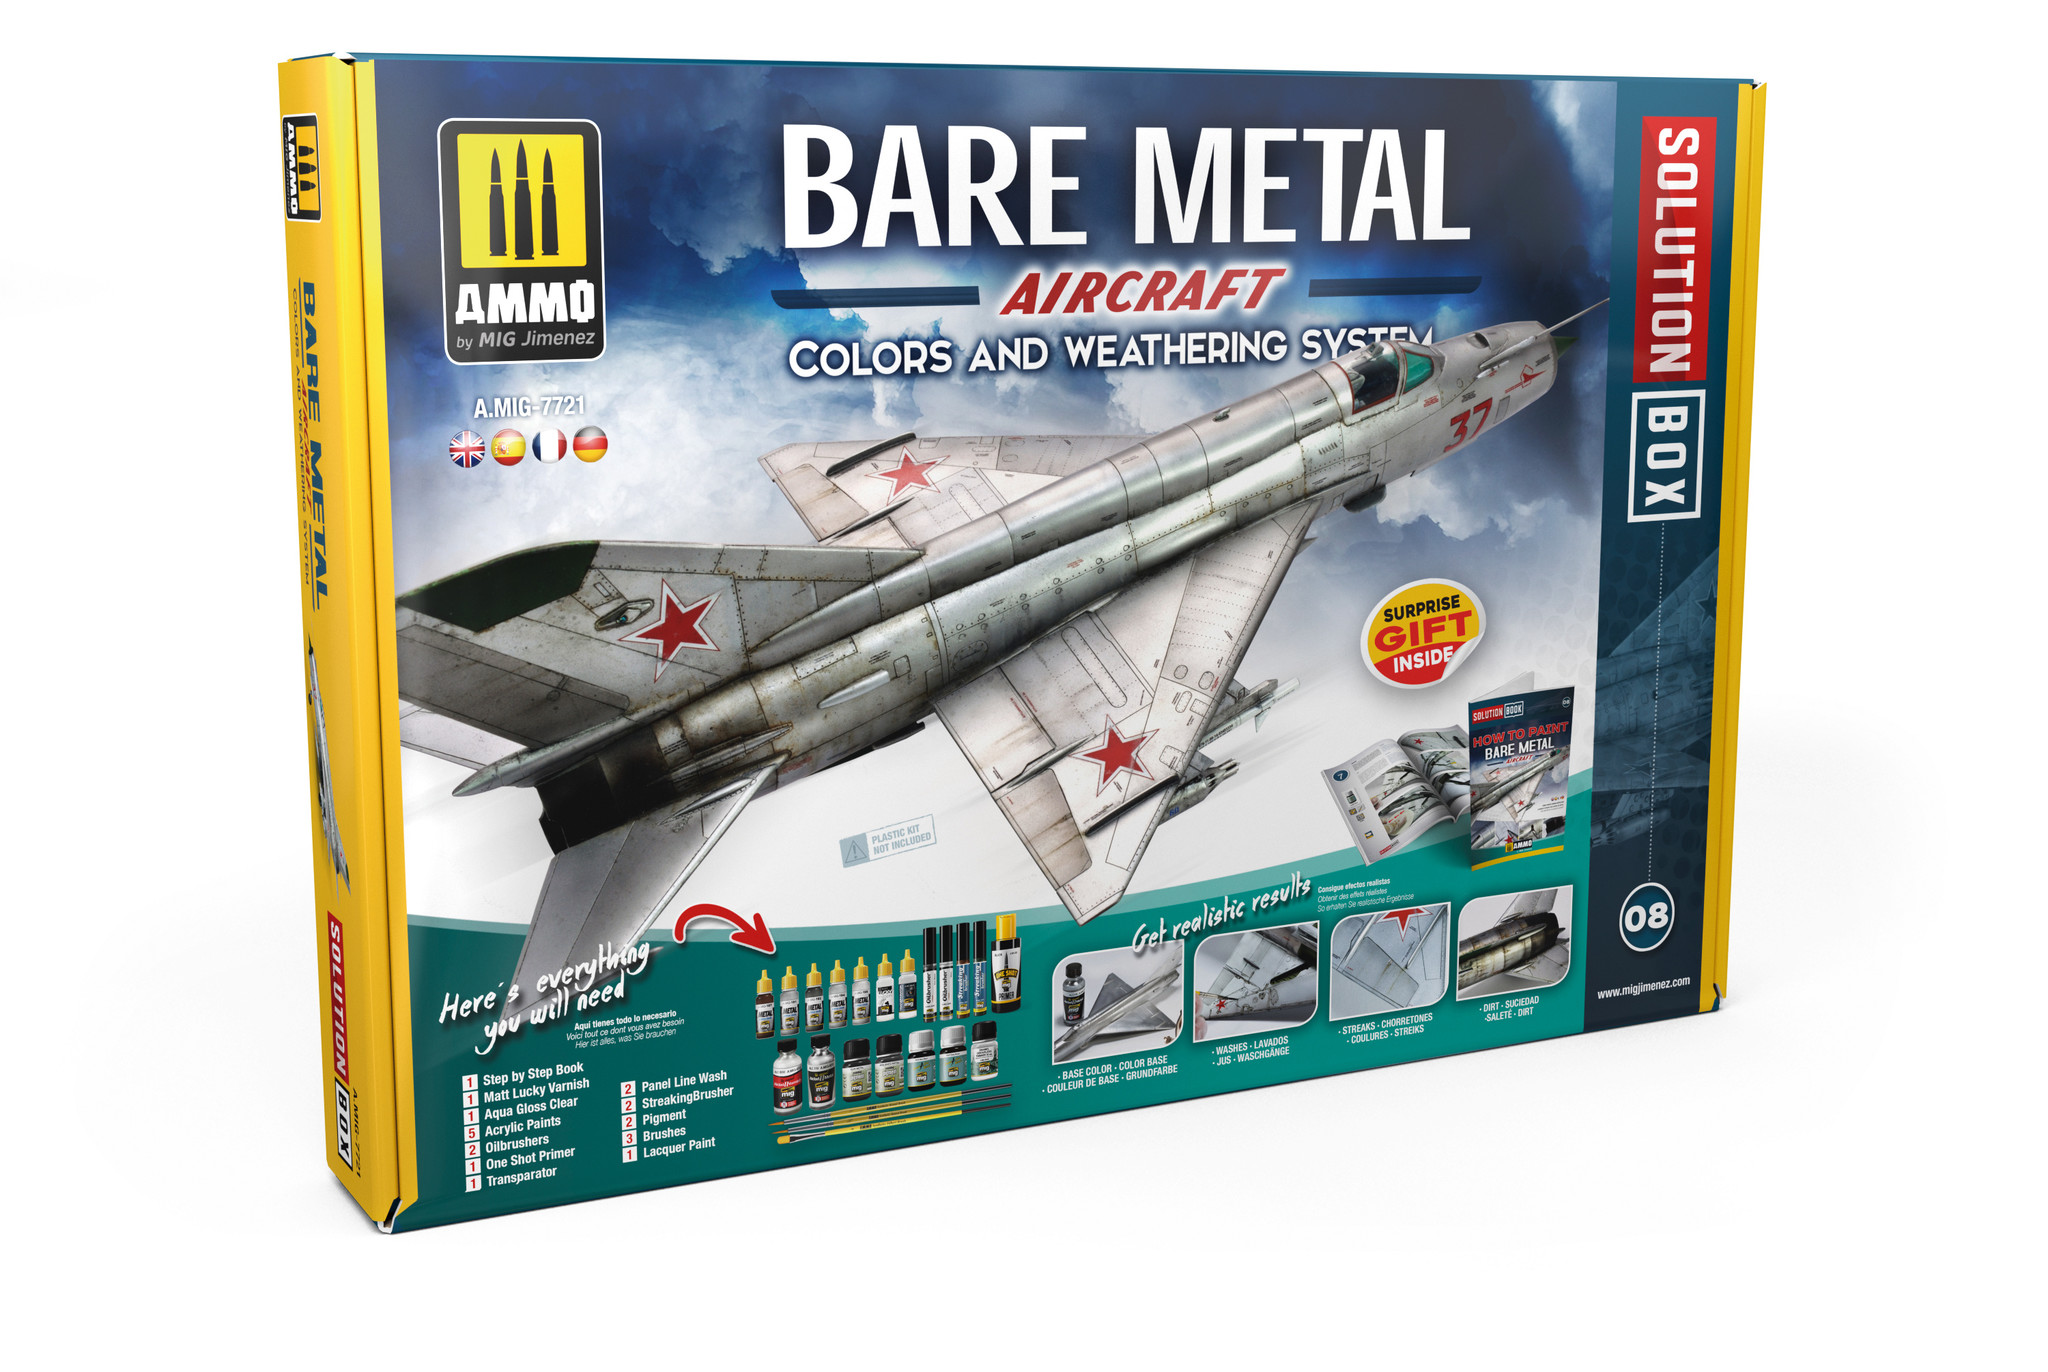 Ammo by Mig Jimenez Bare Metal Aircraft. Colors And Weathering System - Ammo by Mig Jimenez - A.MIG-7721